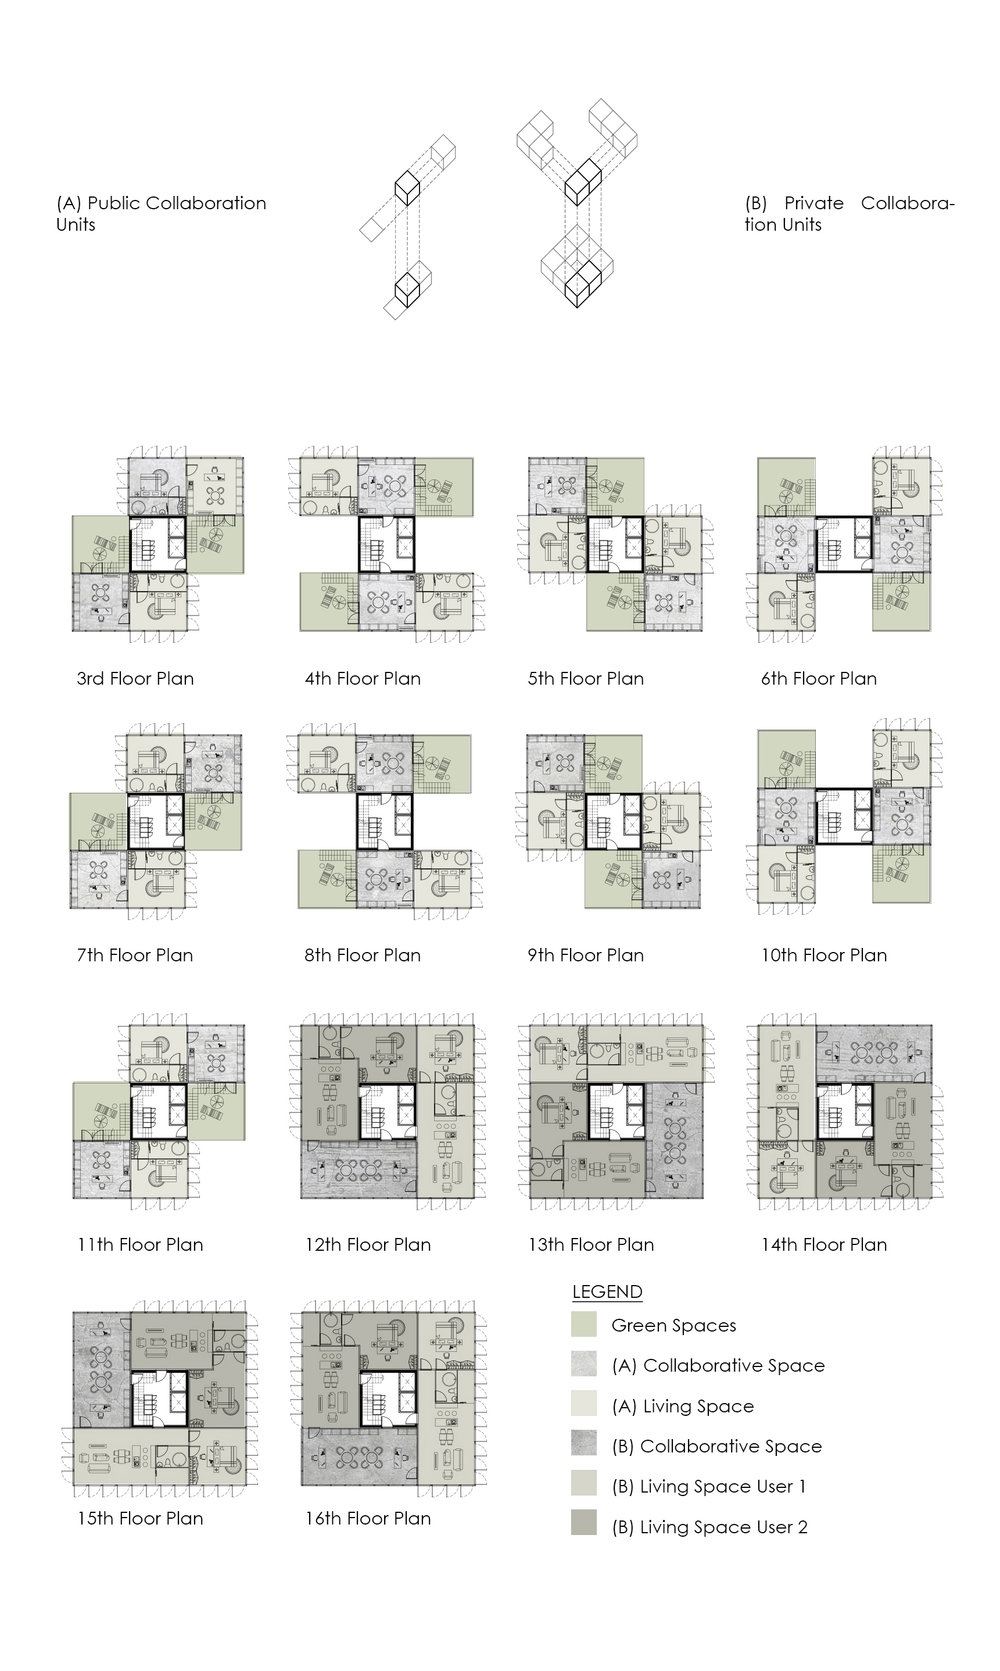 03 Unit typology and Floor Plans.jpg